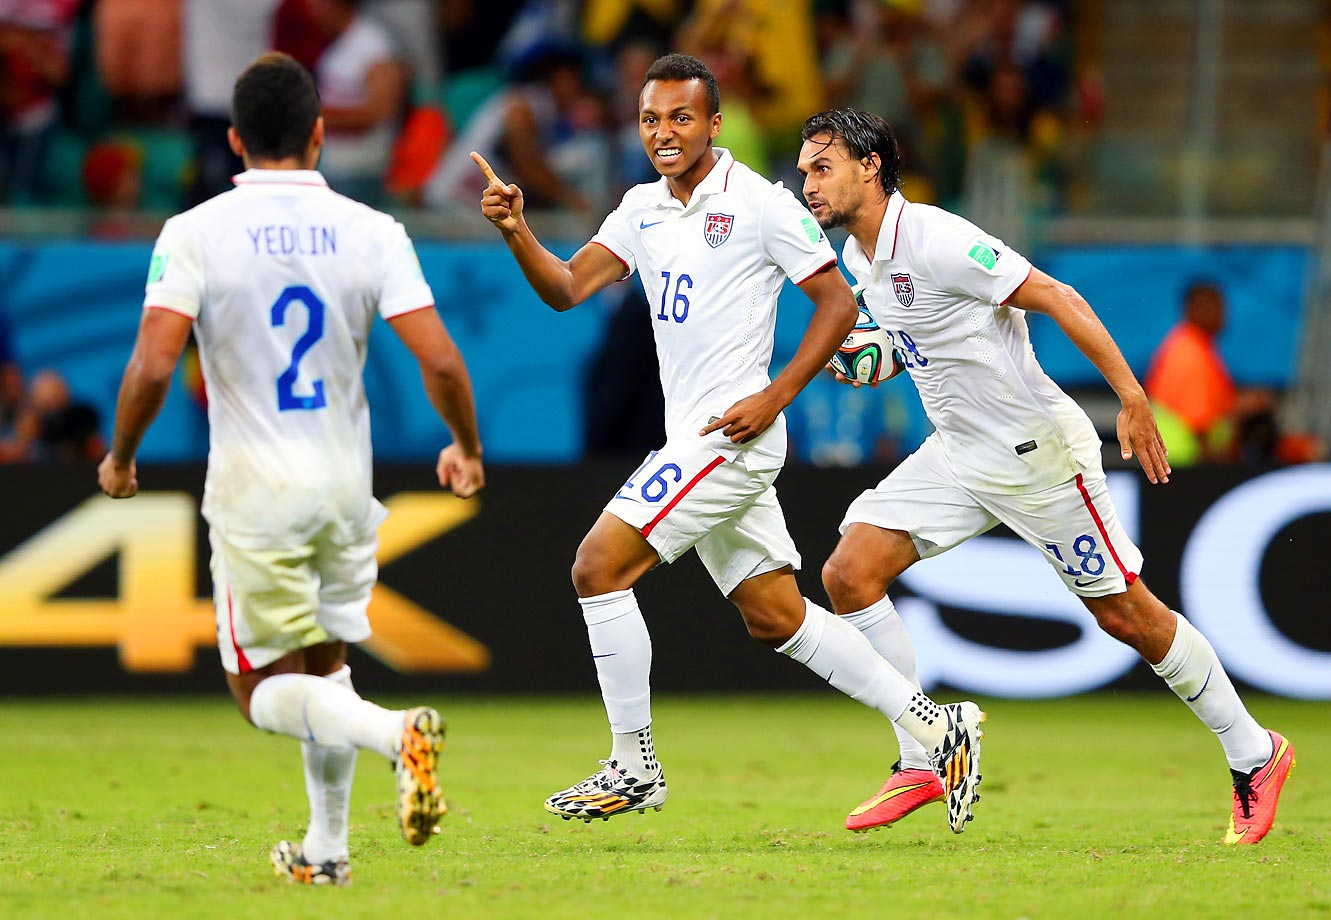 U.S. substitute Julian Green (#16) celebrates his extra time goal that made the score Belgium 2-1 United States.  Unfortunately the U.S. couldn't capitalize on the momentum Green's goal created and eventually lost the game.